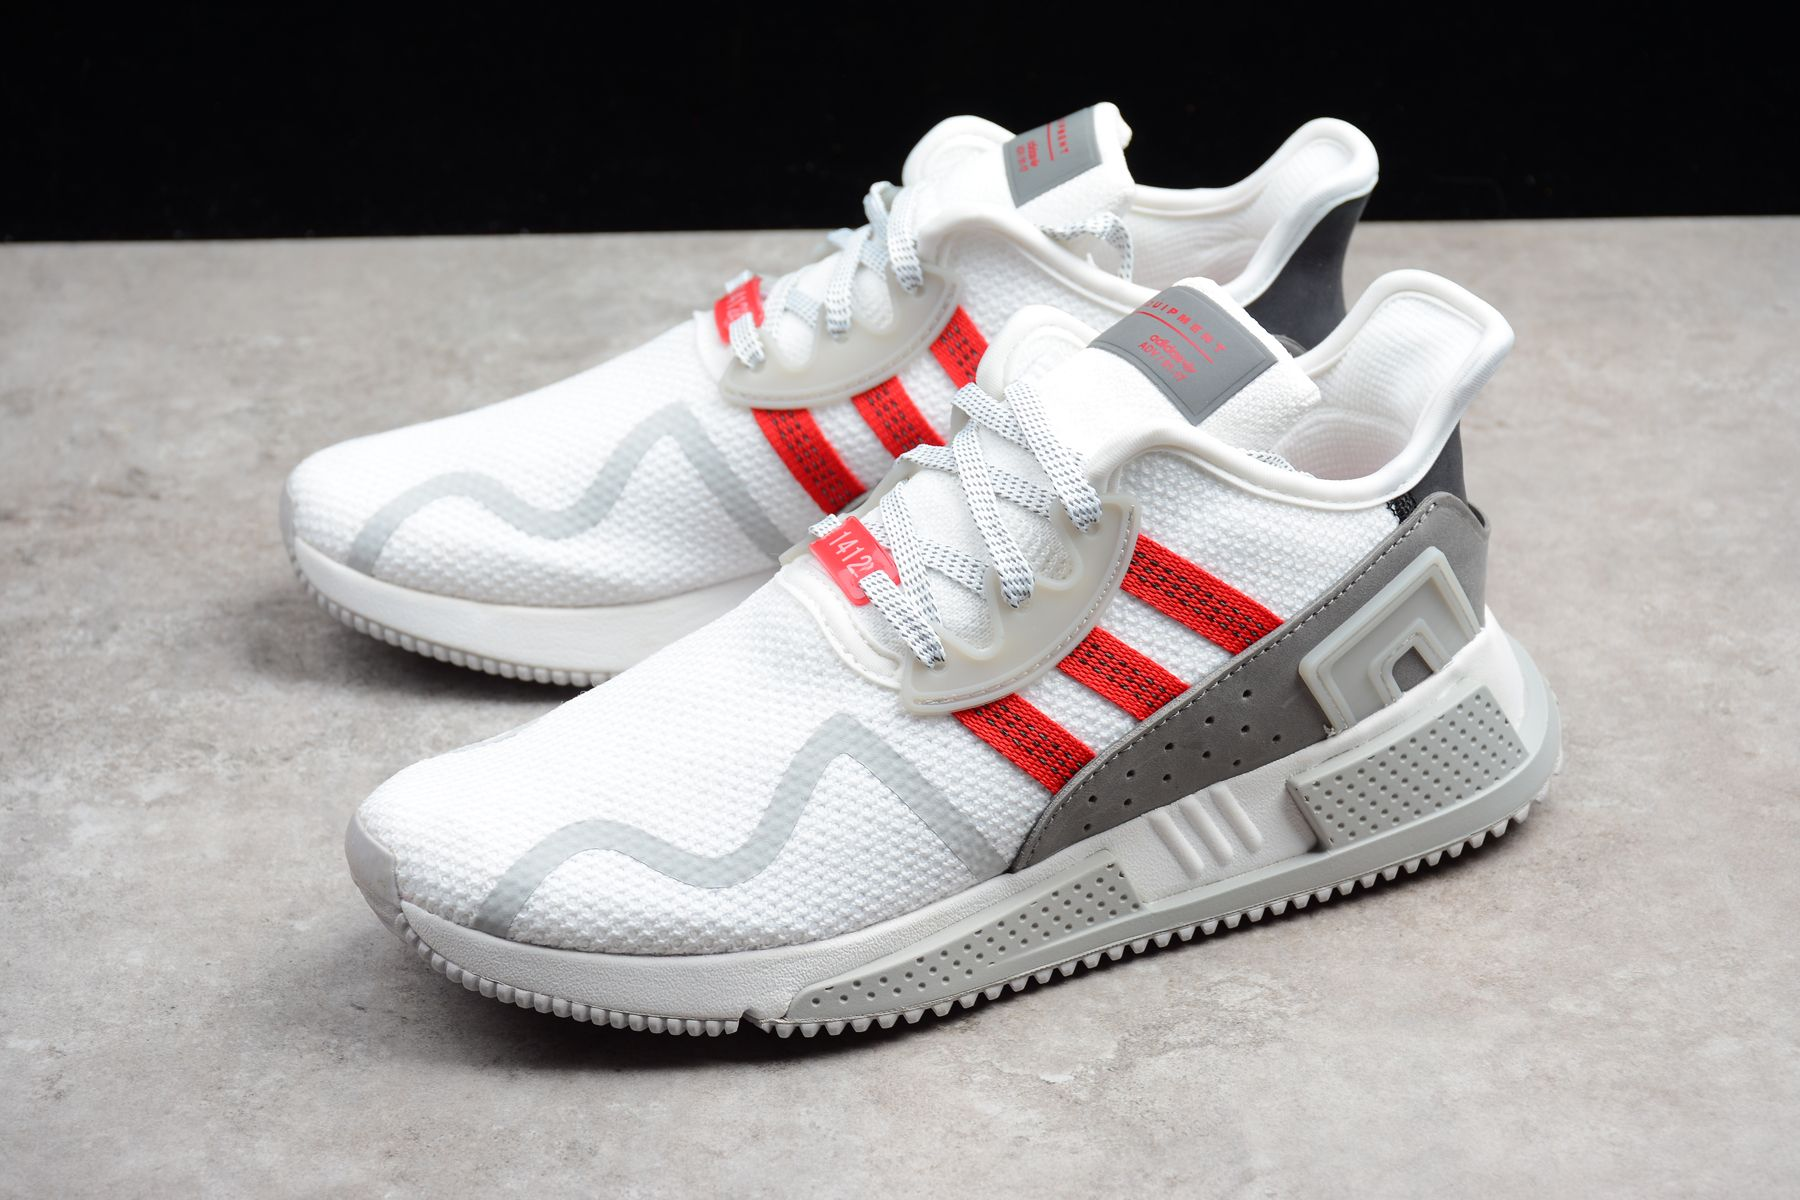 check out 5a732 96958 2018 UK FR Trainers Adidas Originals EQT Cushion ADV EQT White Red